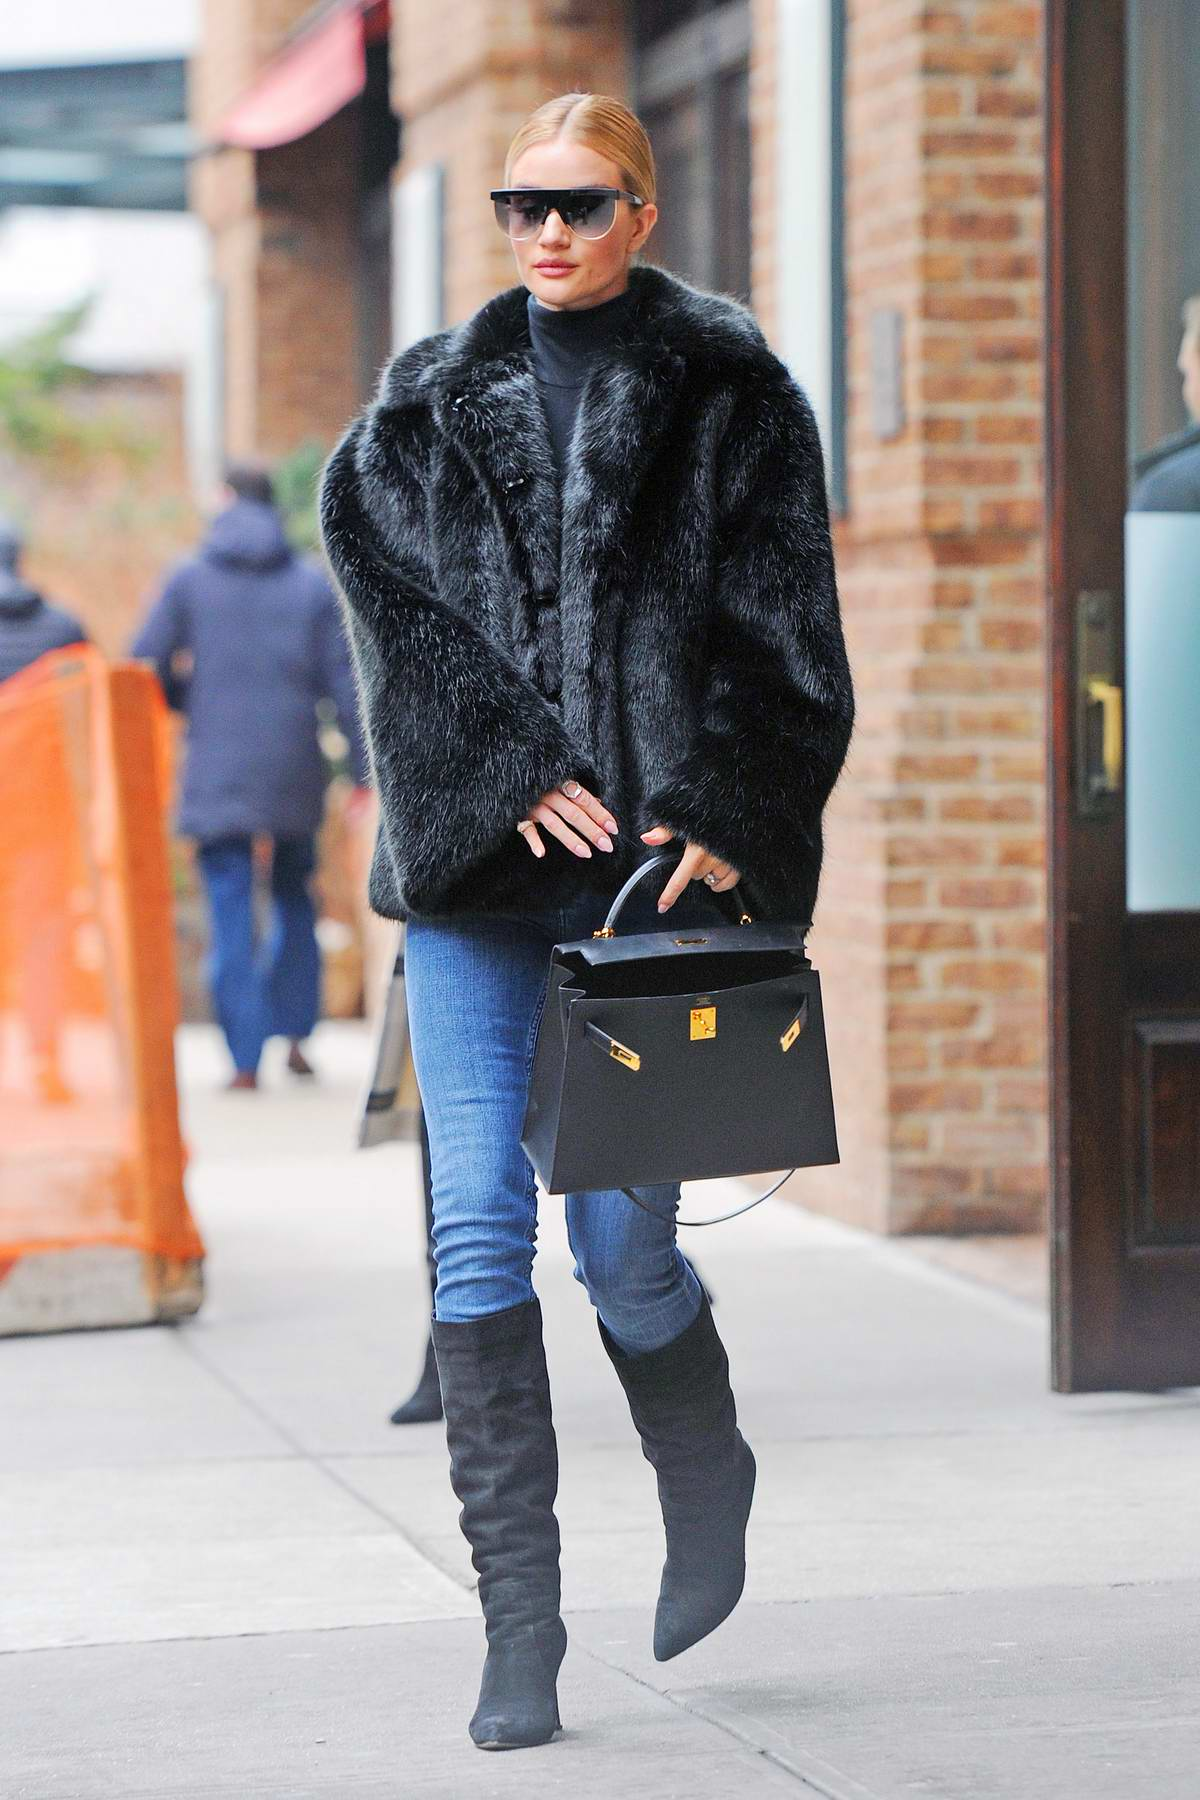 Rosie Huntington-Whiteley looks chic in a black fur coat, blue jeans and knee high black suede boots as she leaves The Greenwich Hotel in New York City